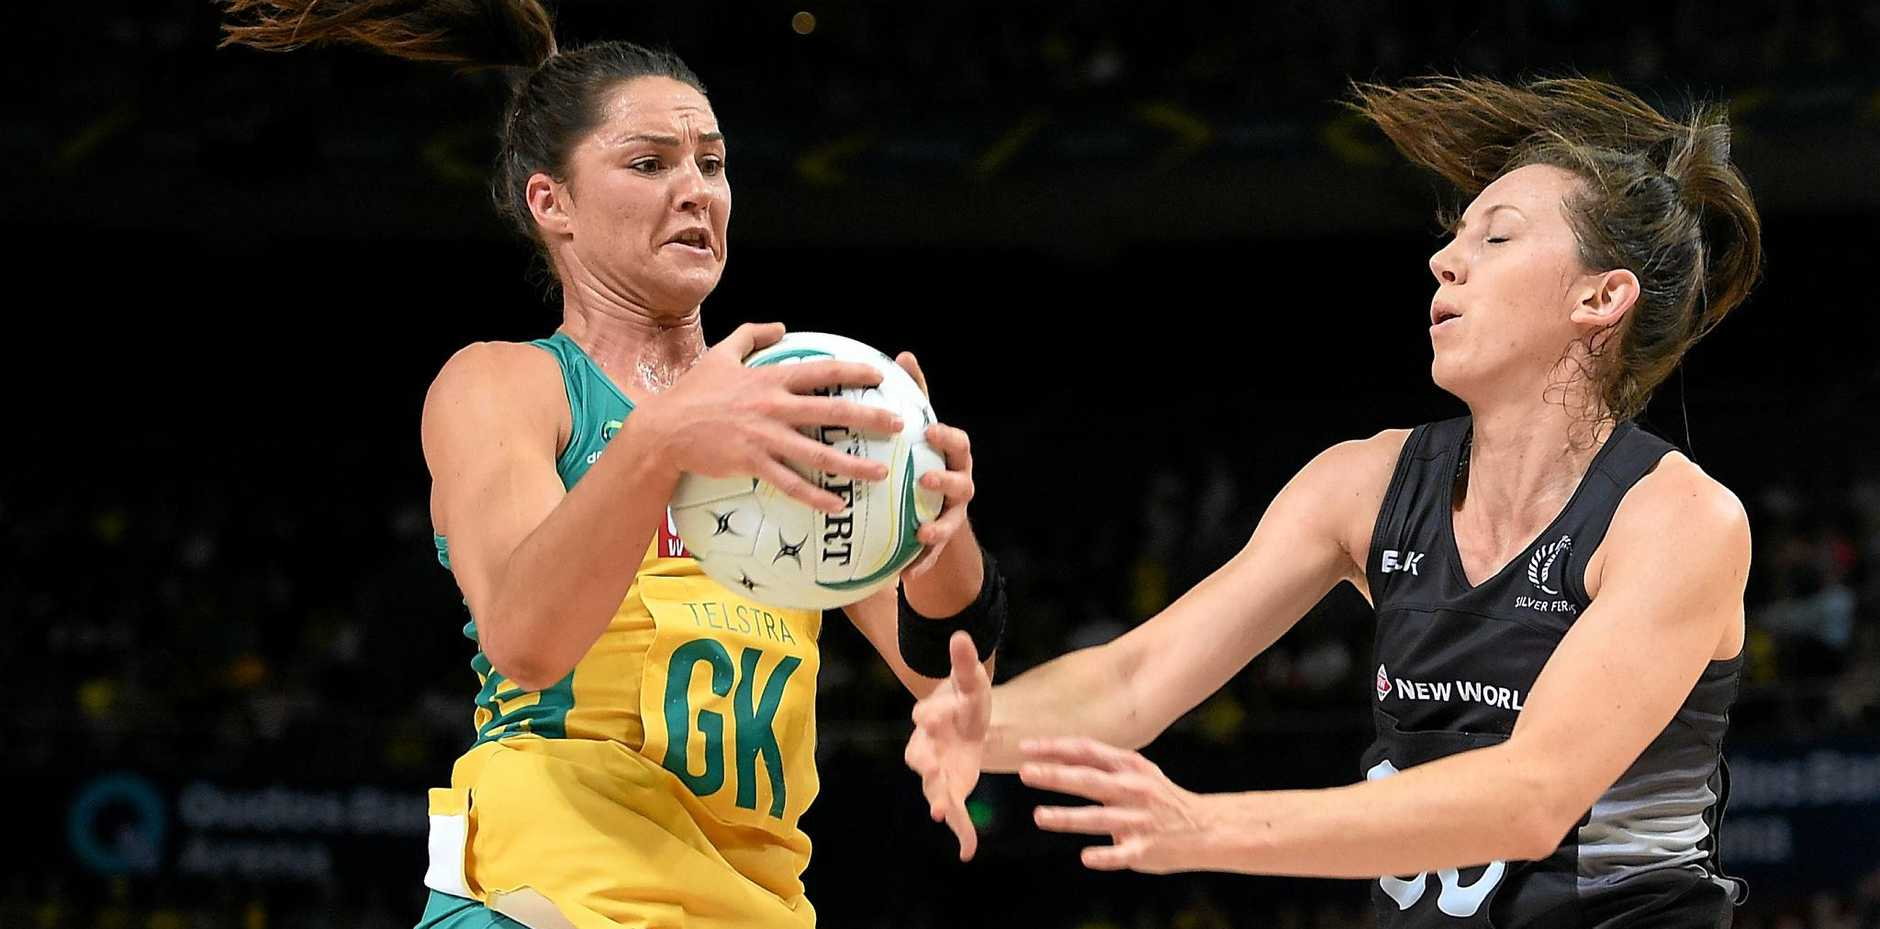 Sharni Layton of the Diamonds competes for the ball with Bailey Mes of the Silver Ferns during the Constellation Cup netball series last month.